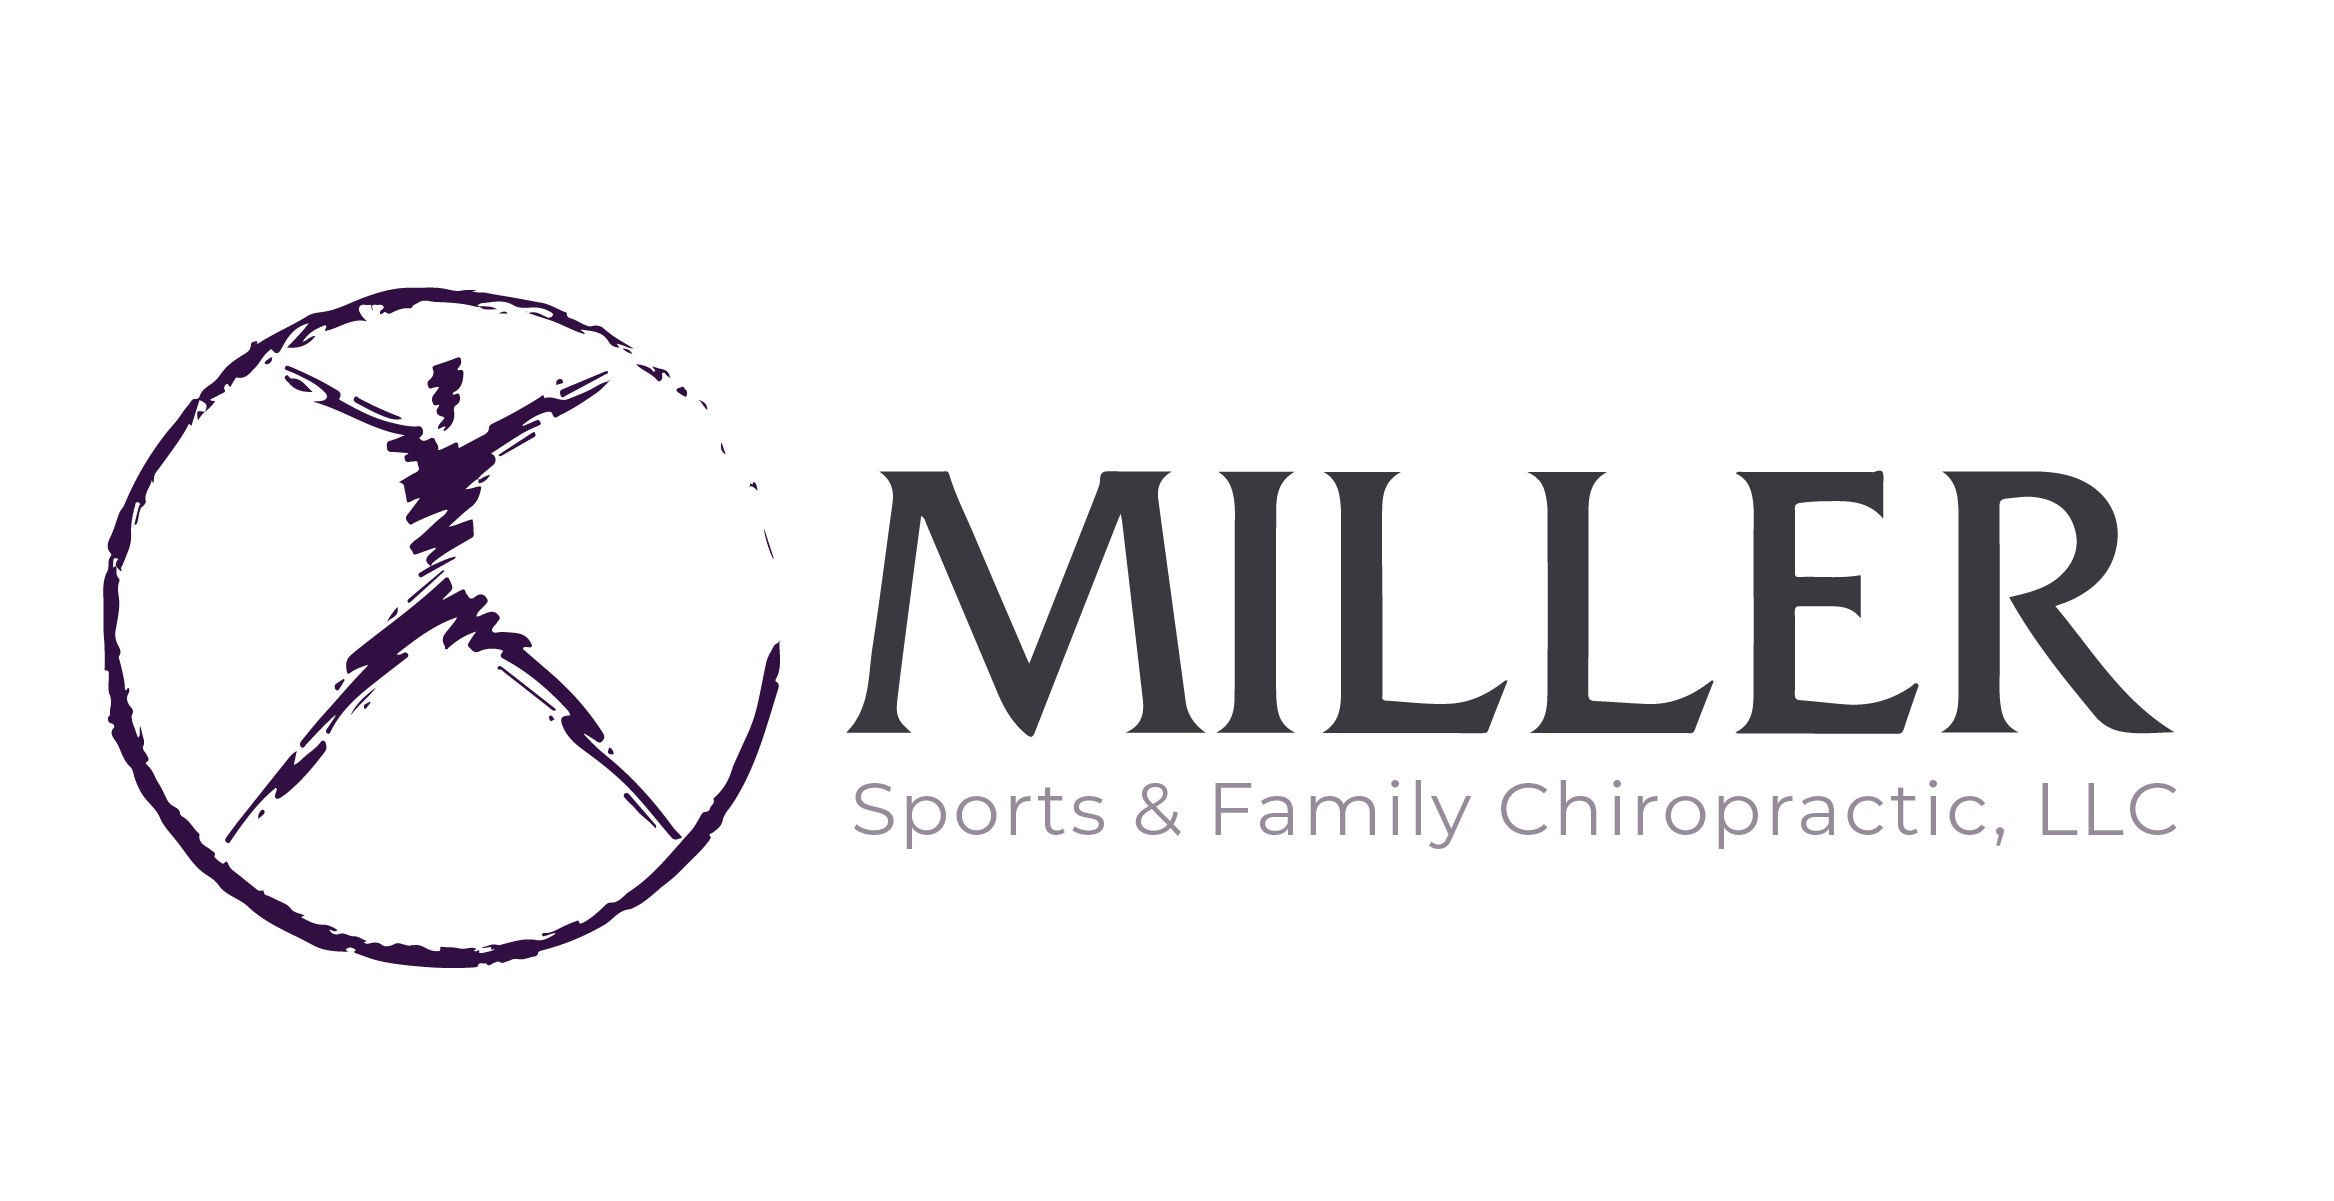 Miller Sports & Family Chiropractic